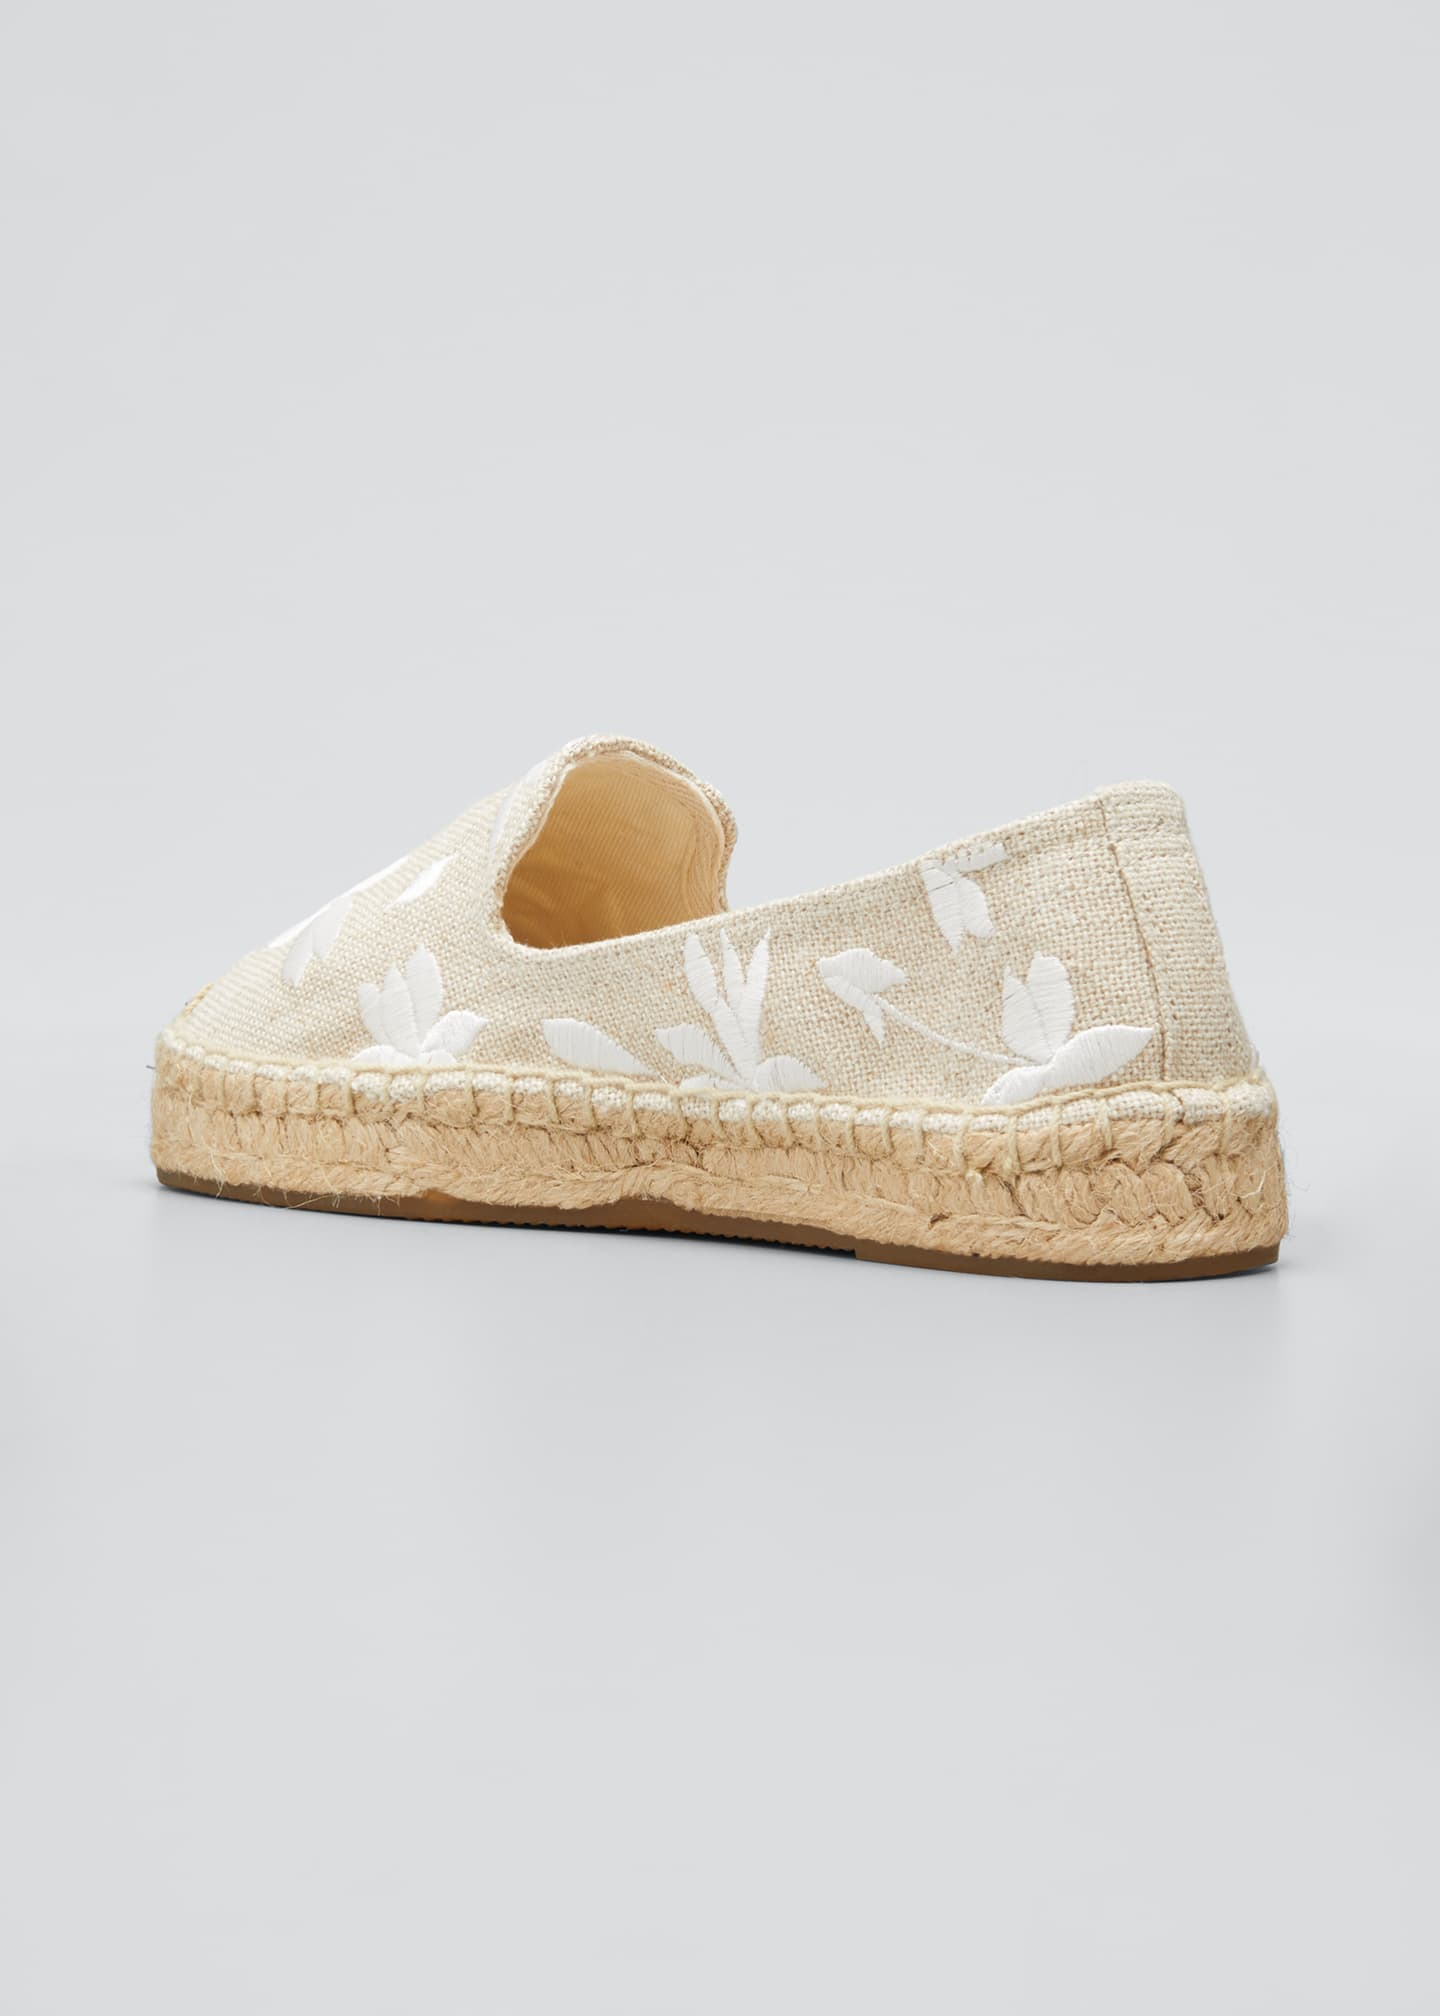 Image 2 of 3: Shiloh Floral Embroidered Espadrilles